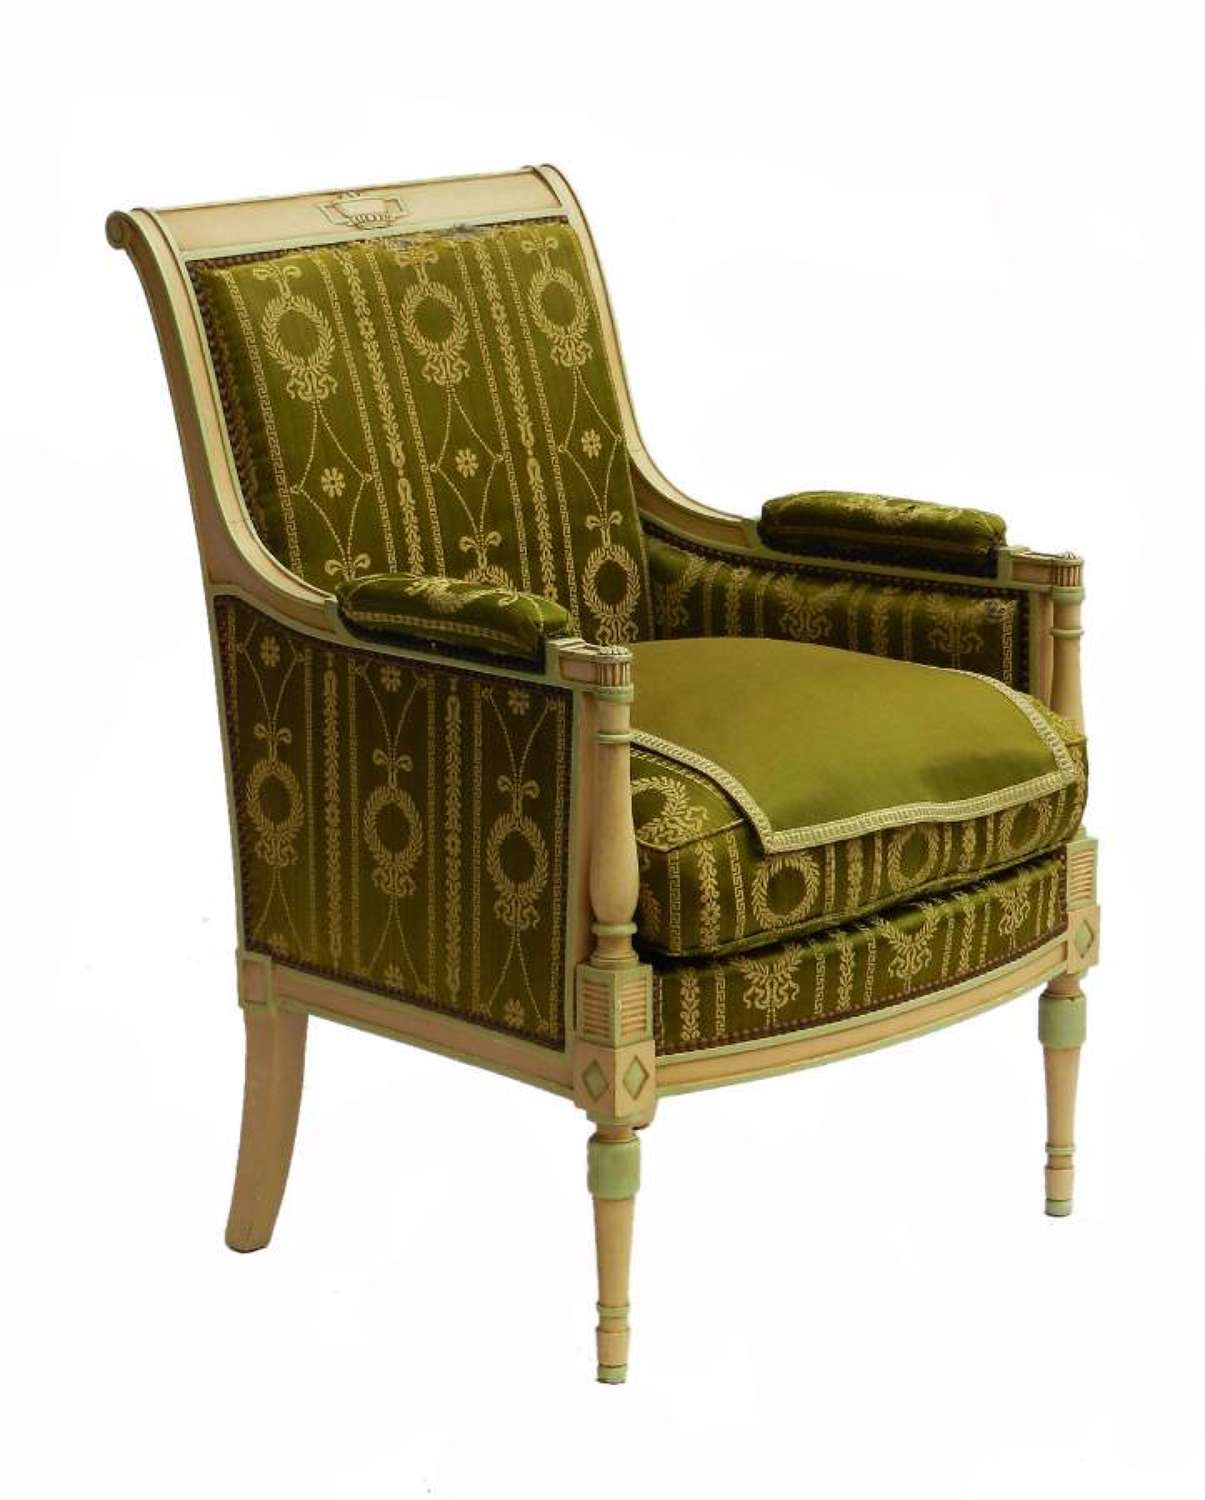 Directoire Empire Revival Bergere Original Paint to recover